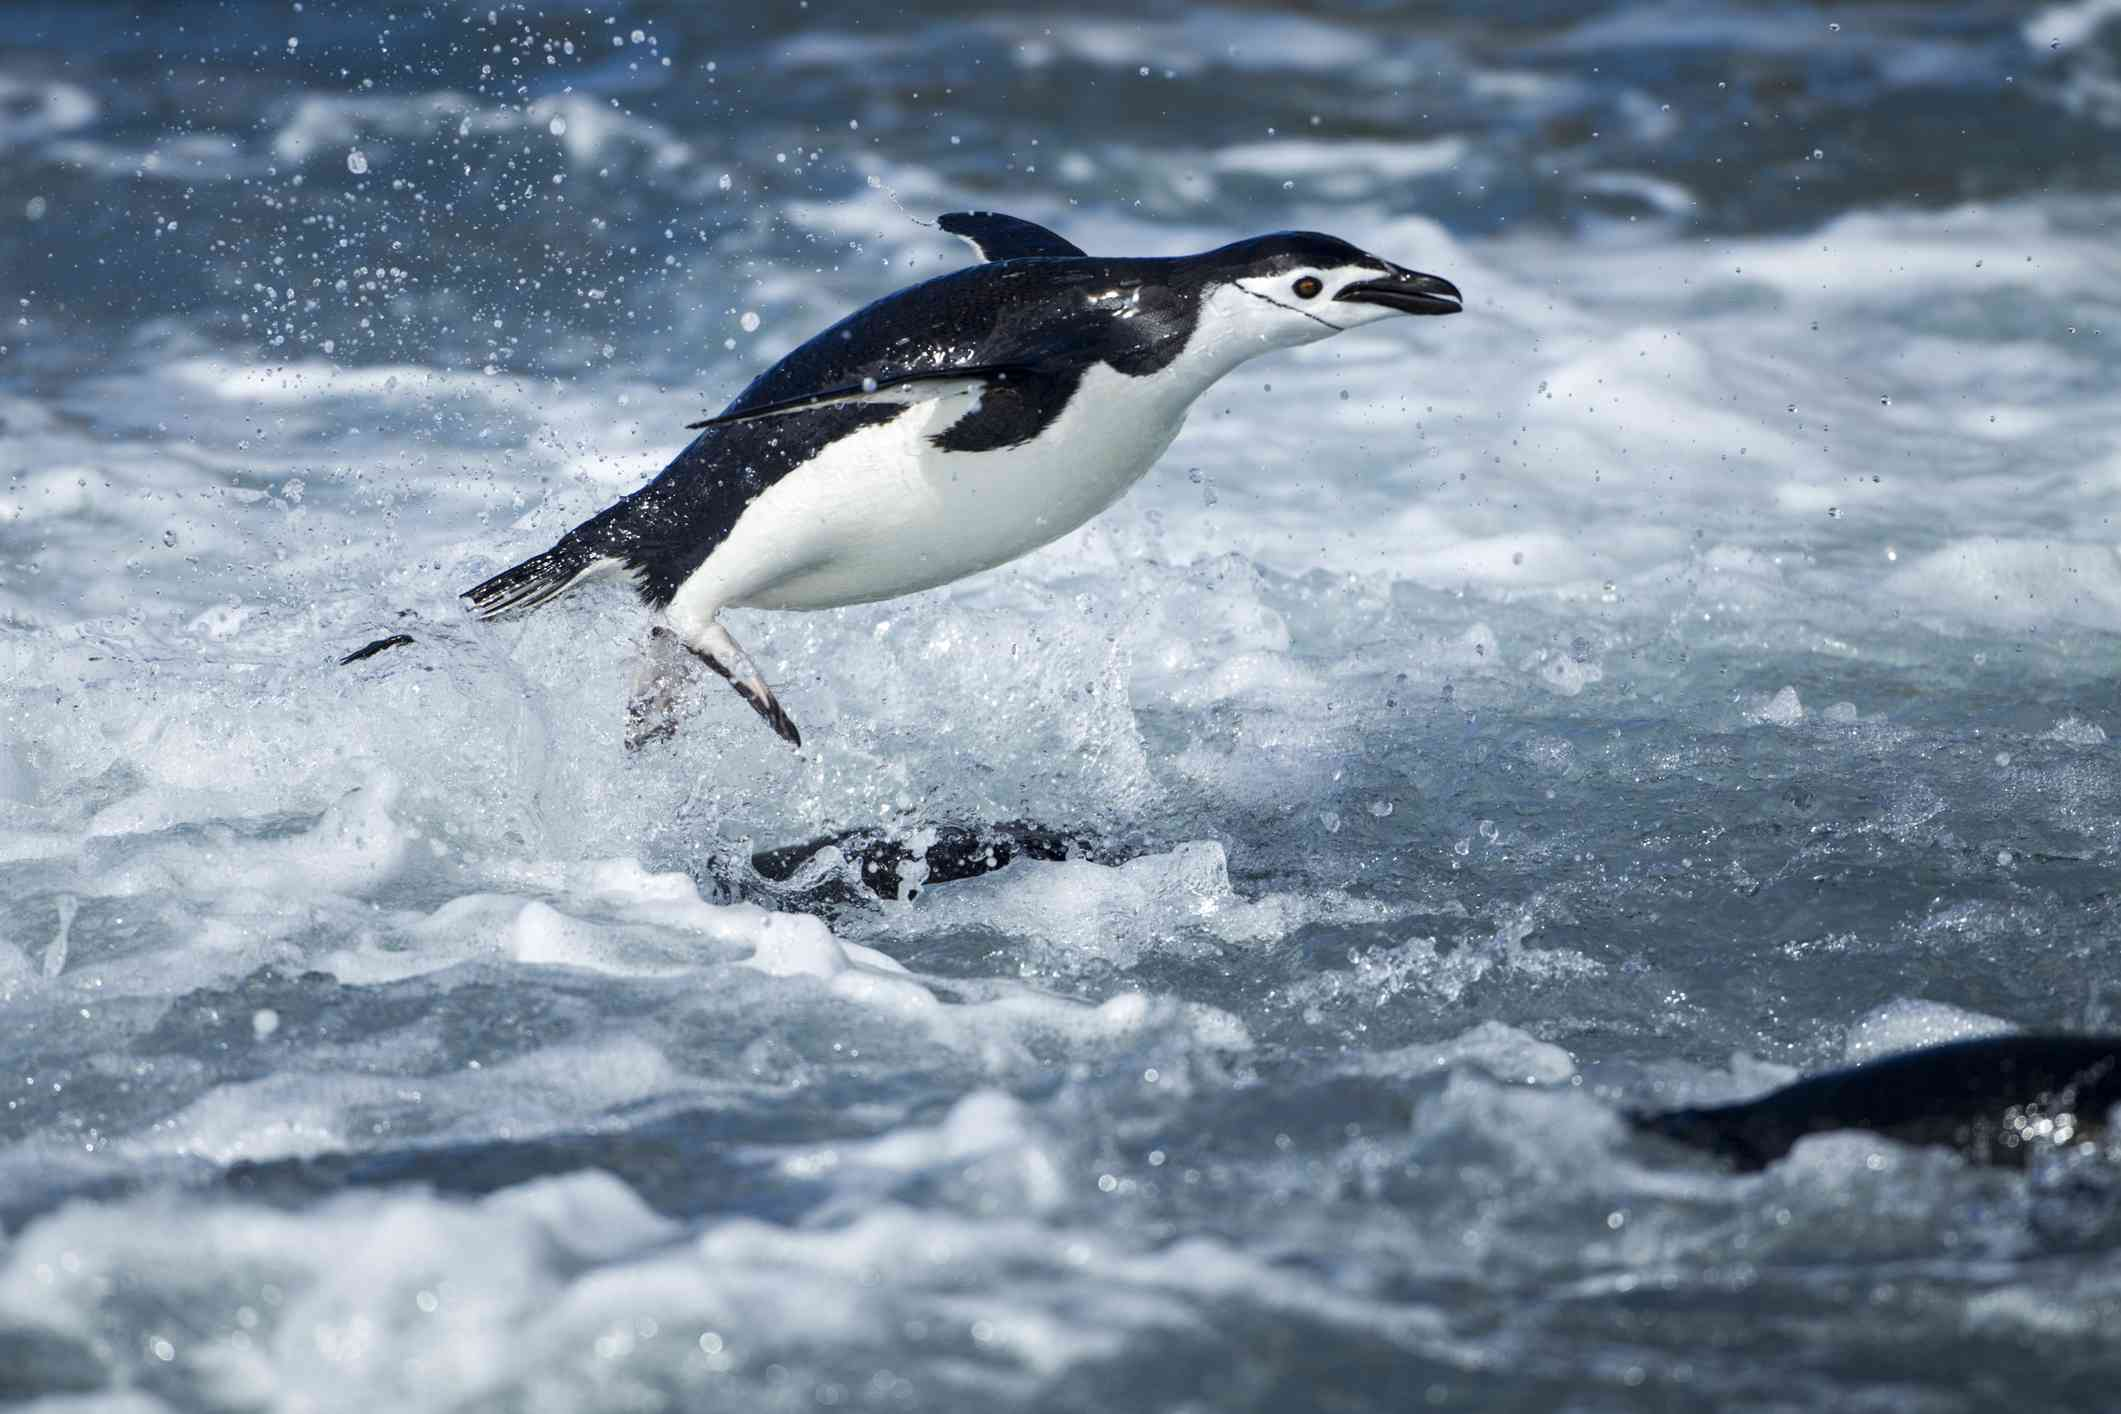 Chinstrap penguin jumping out of water in Antarctica.